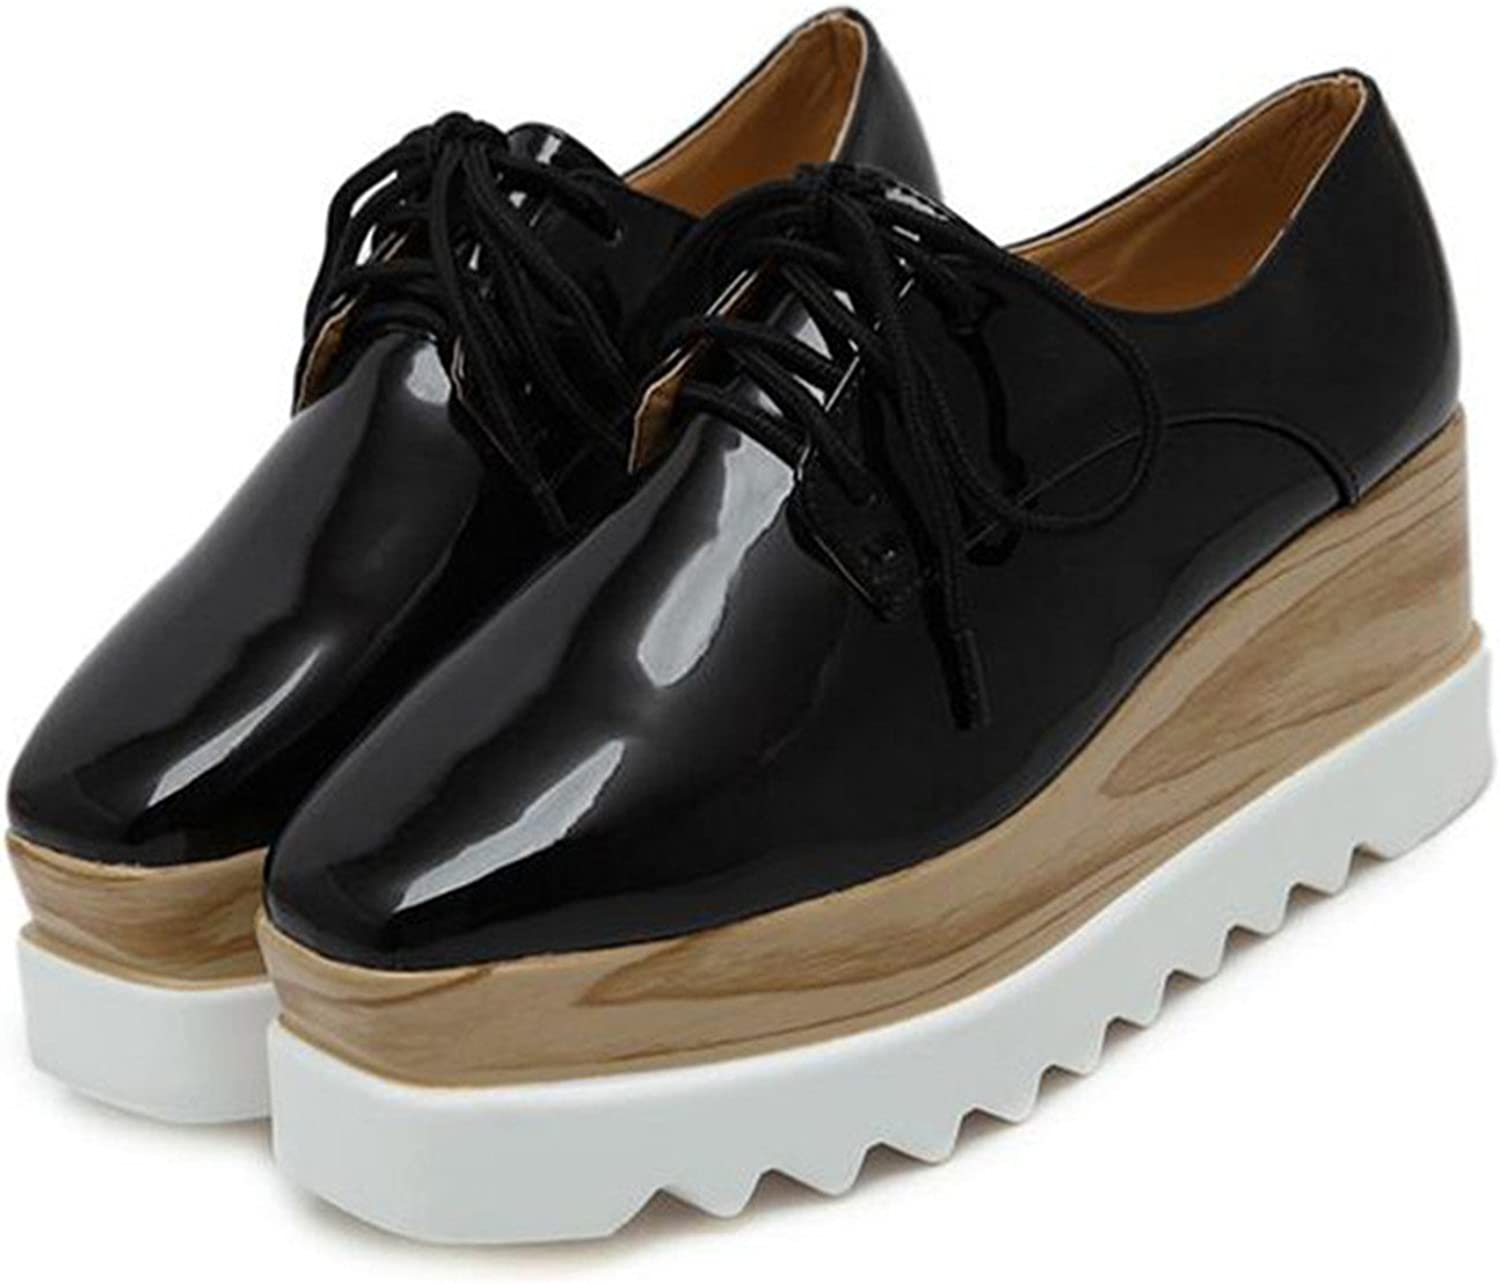 Mandaartins Woman Patent Leather Oxford Platform shoes Lace-up Creepers Flats